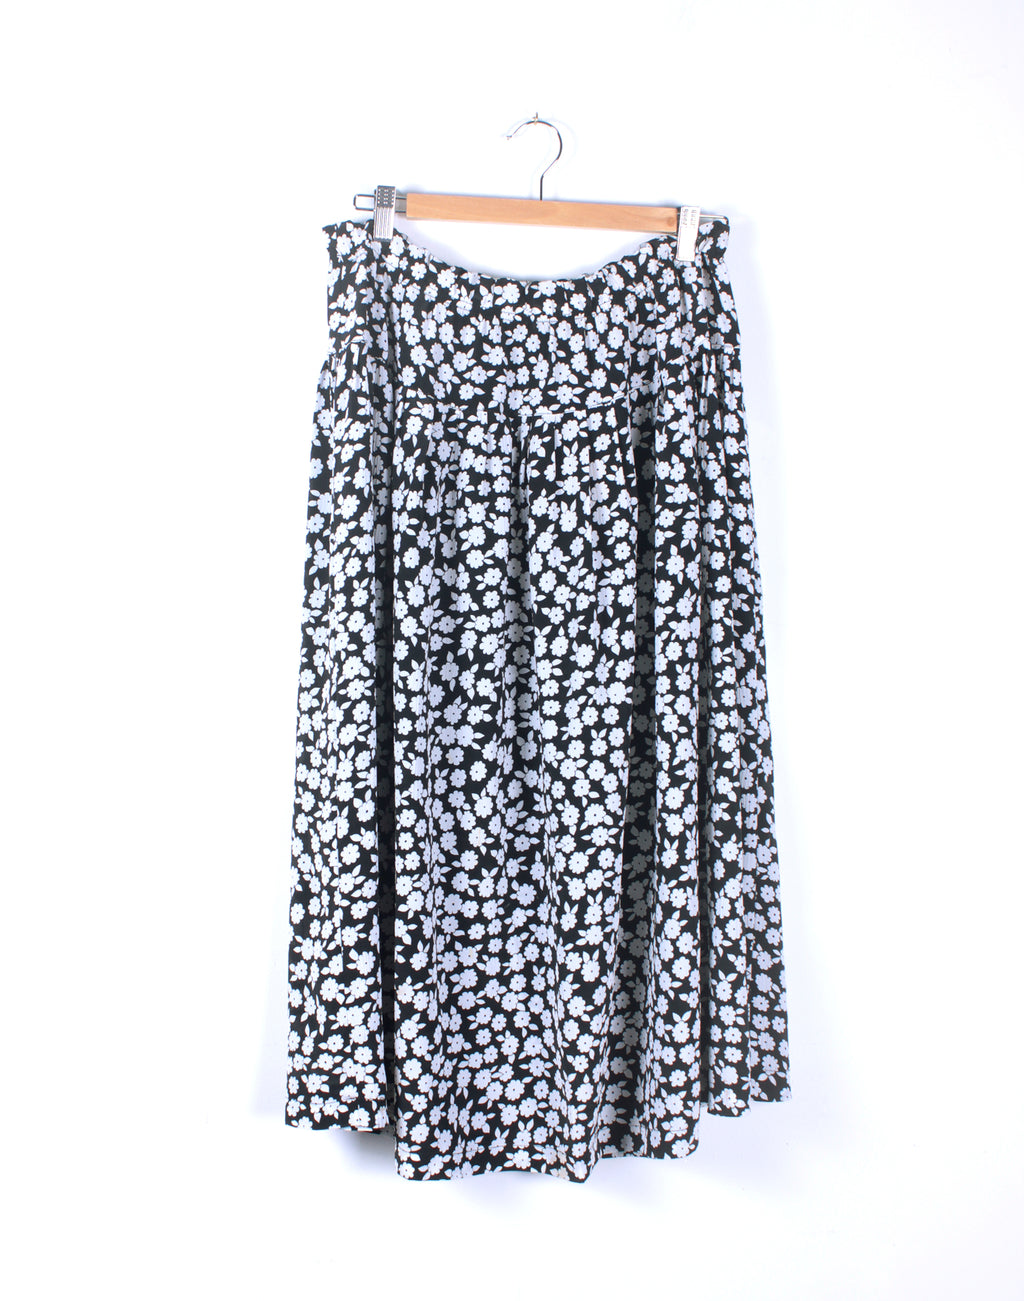 Vintage 80's Black & White Floral Skirt